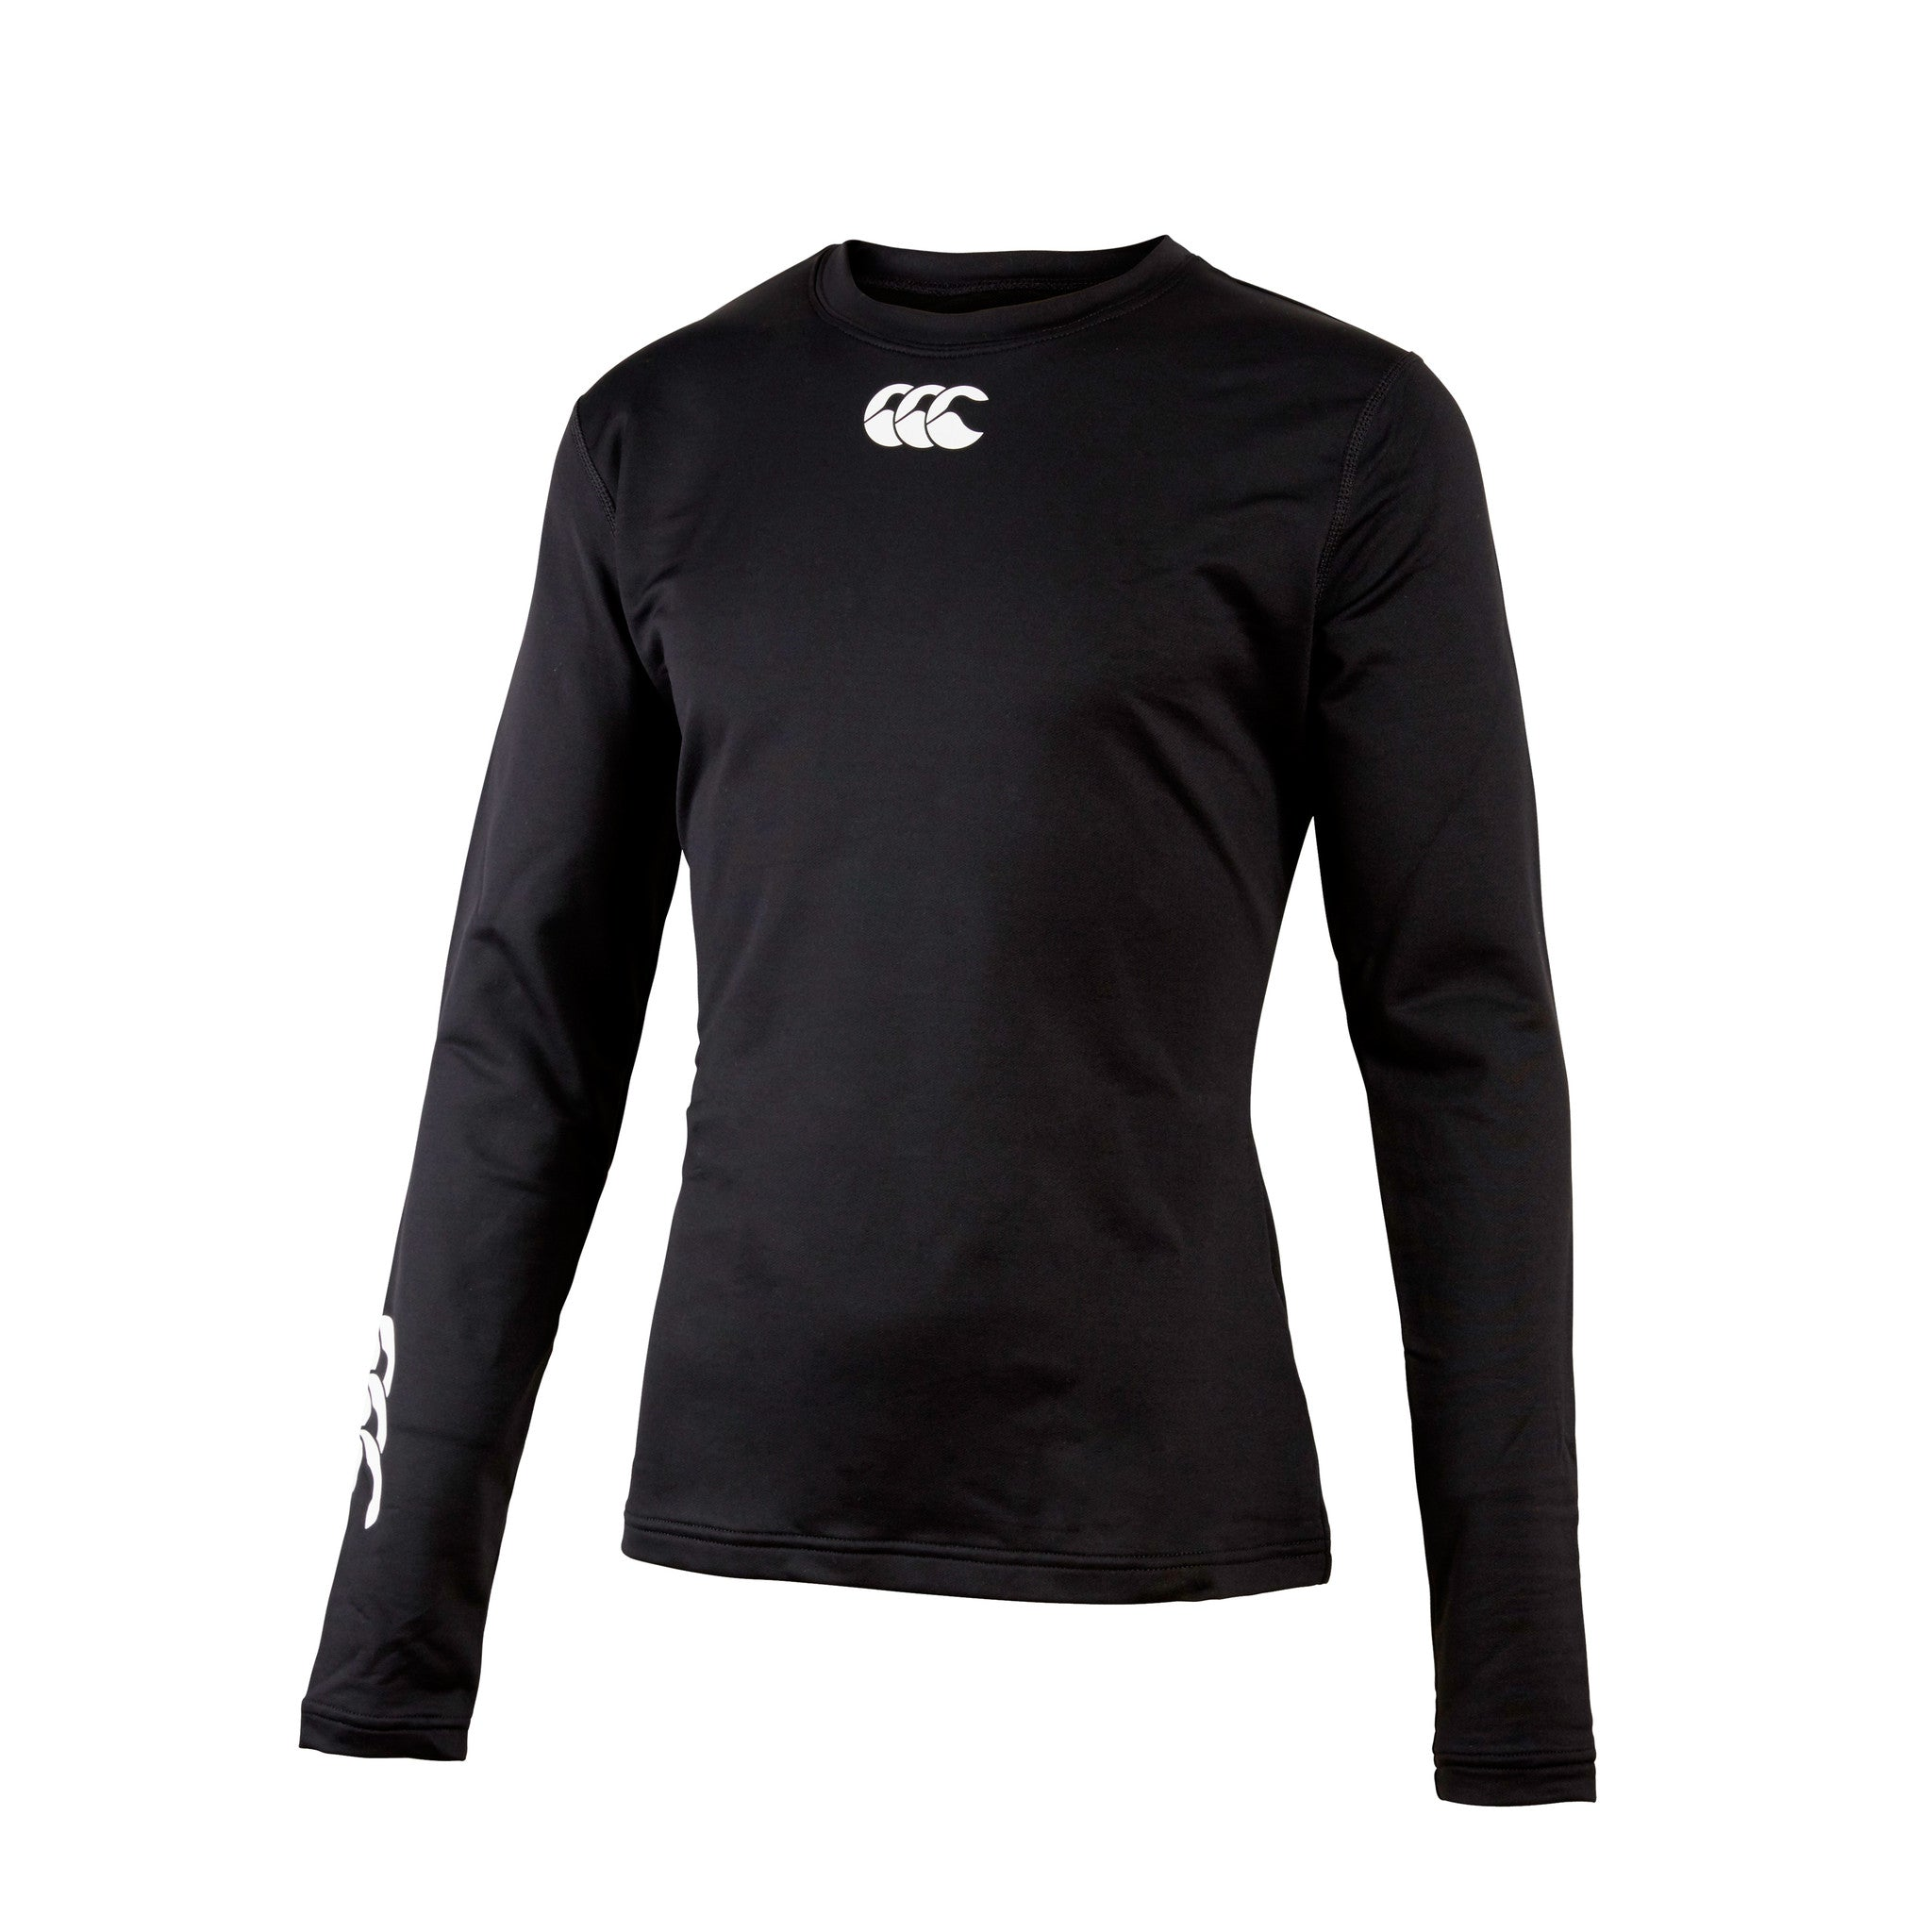 Canterbury Baselayer Women's Skin Top for Sports